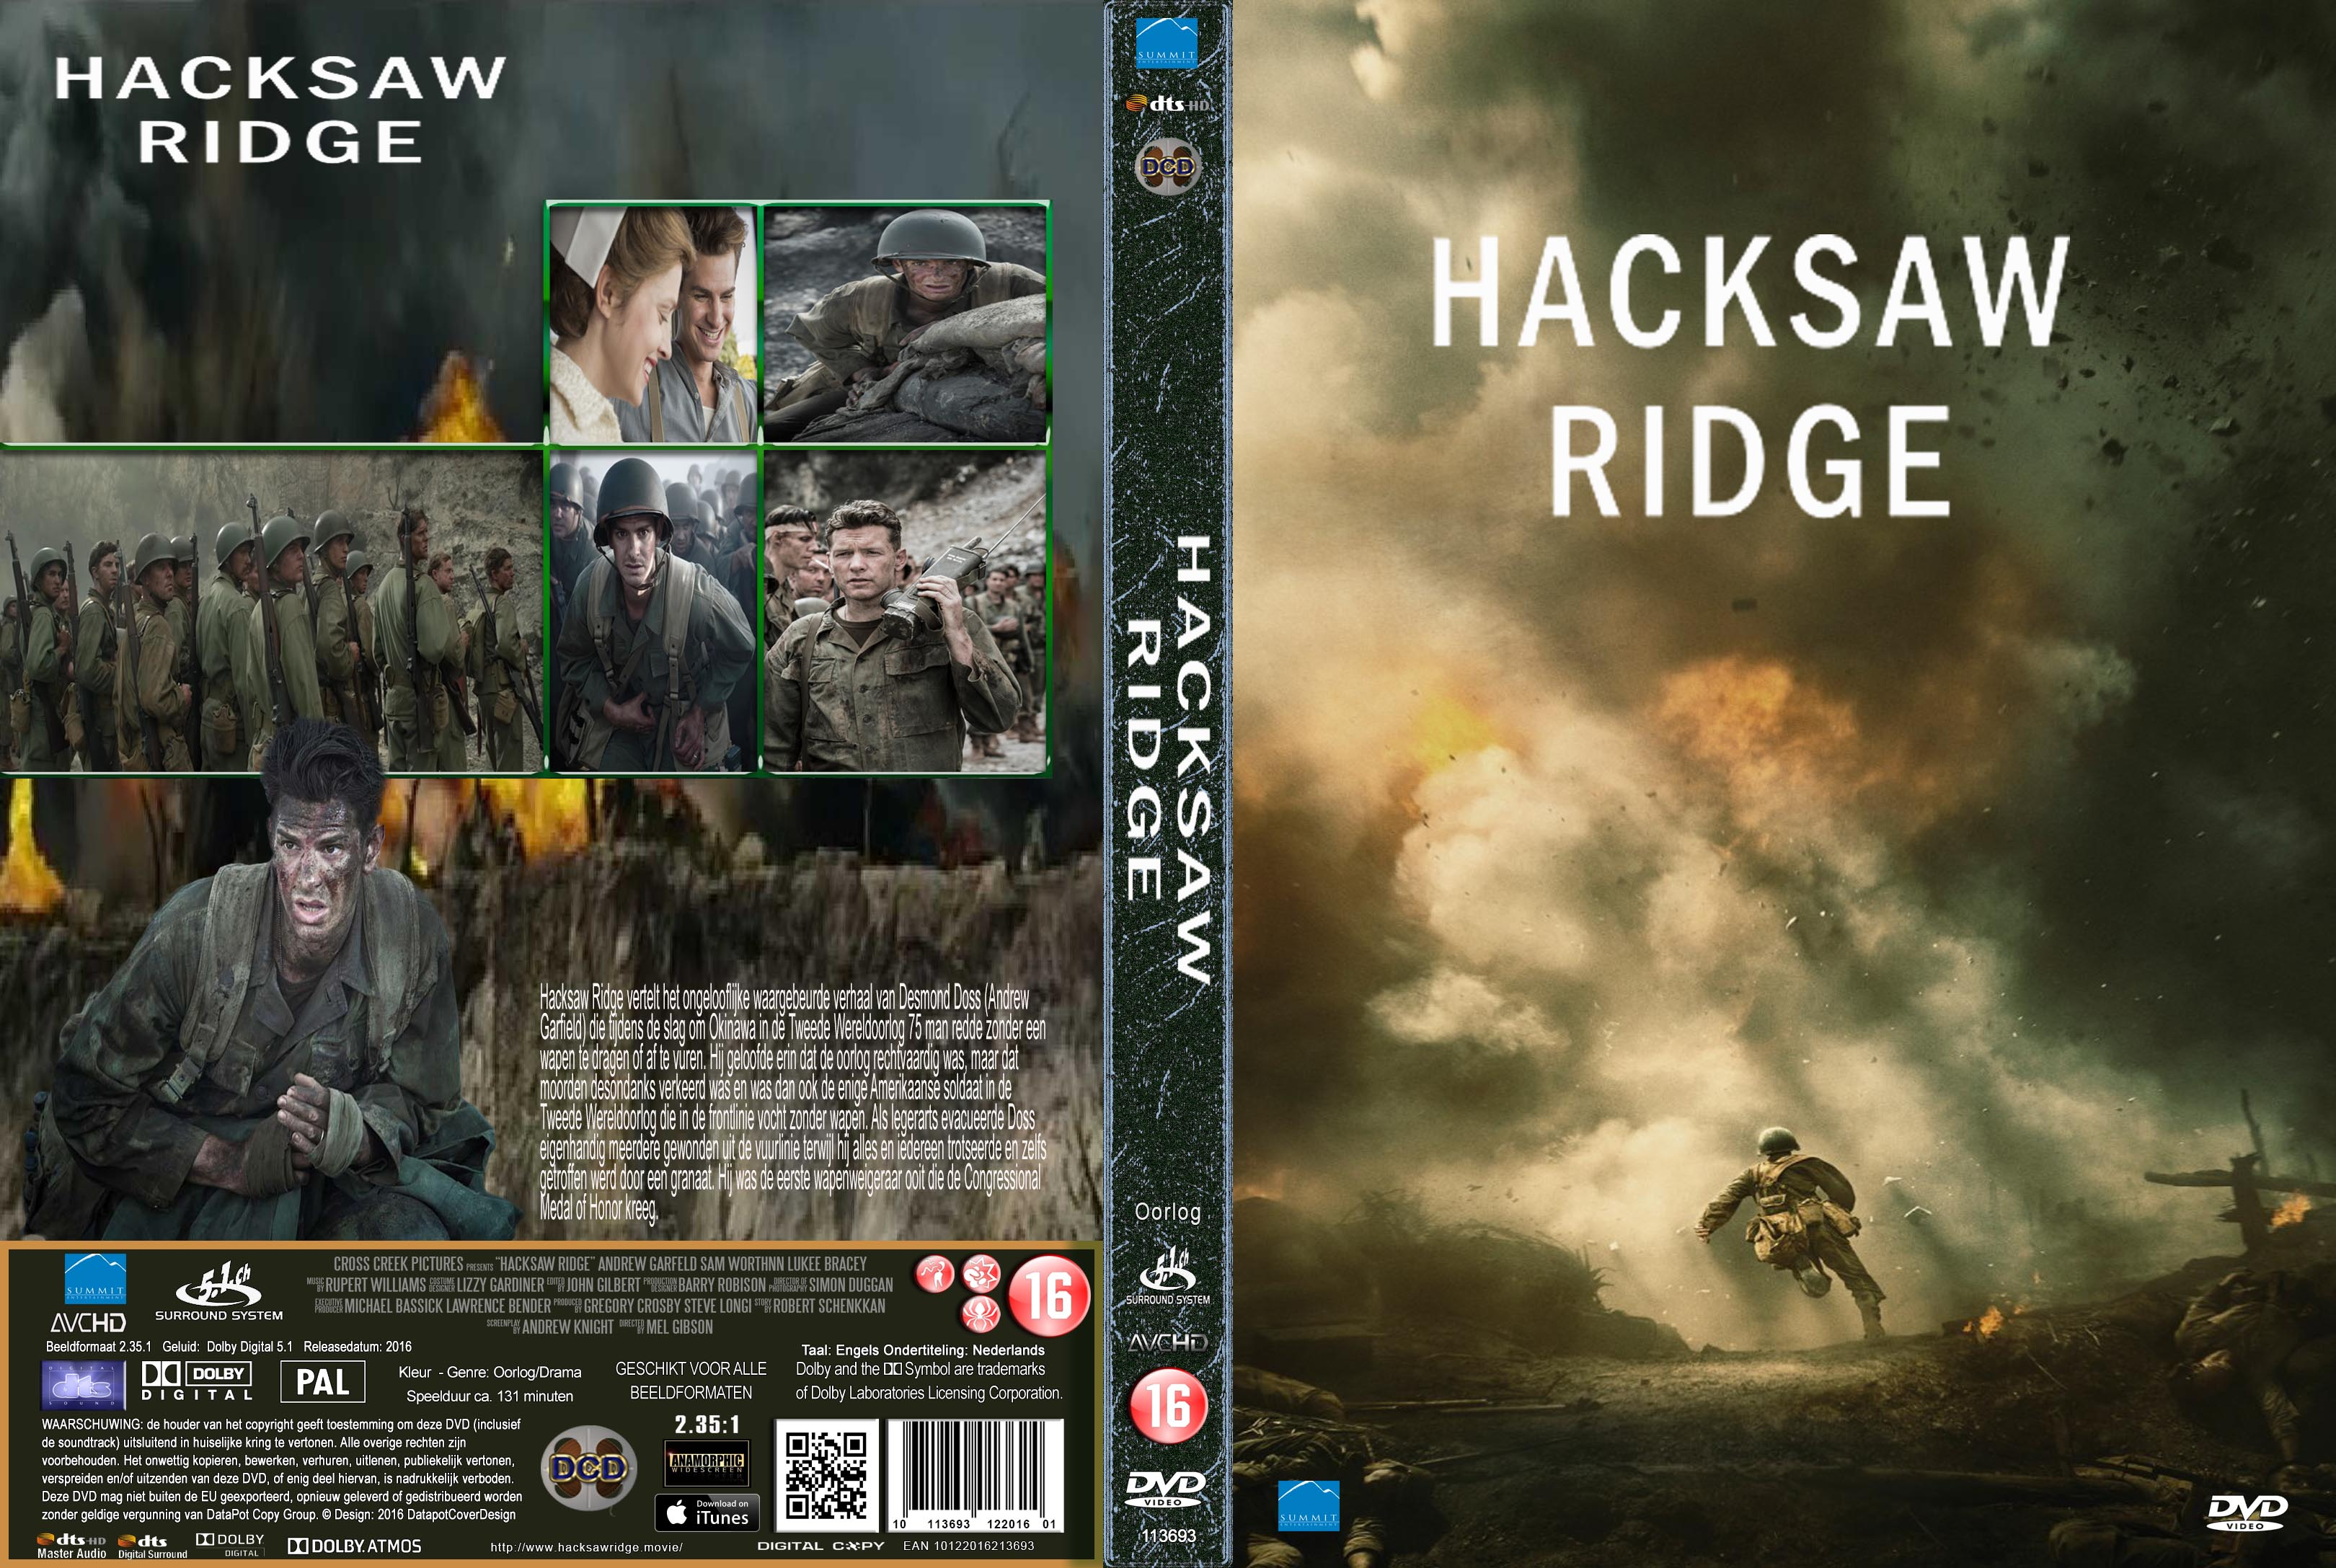 Hacksaw Ridge 2016 Front Dvd Covers Cover Century Over 500 000 Album Art Covers For Free